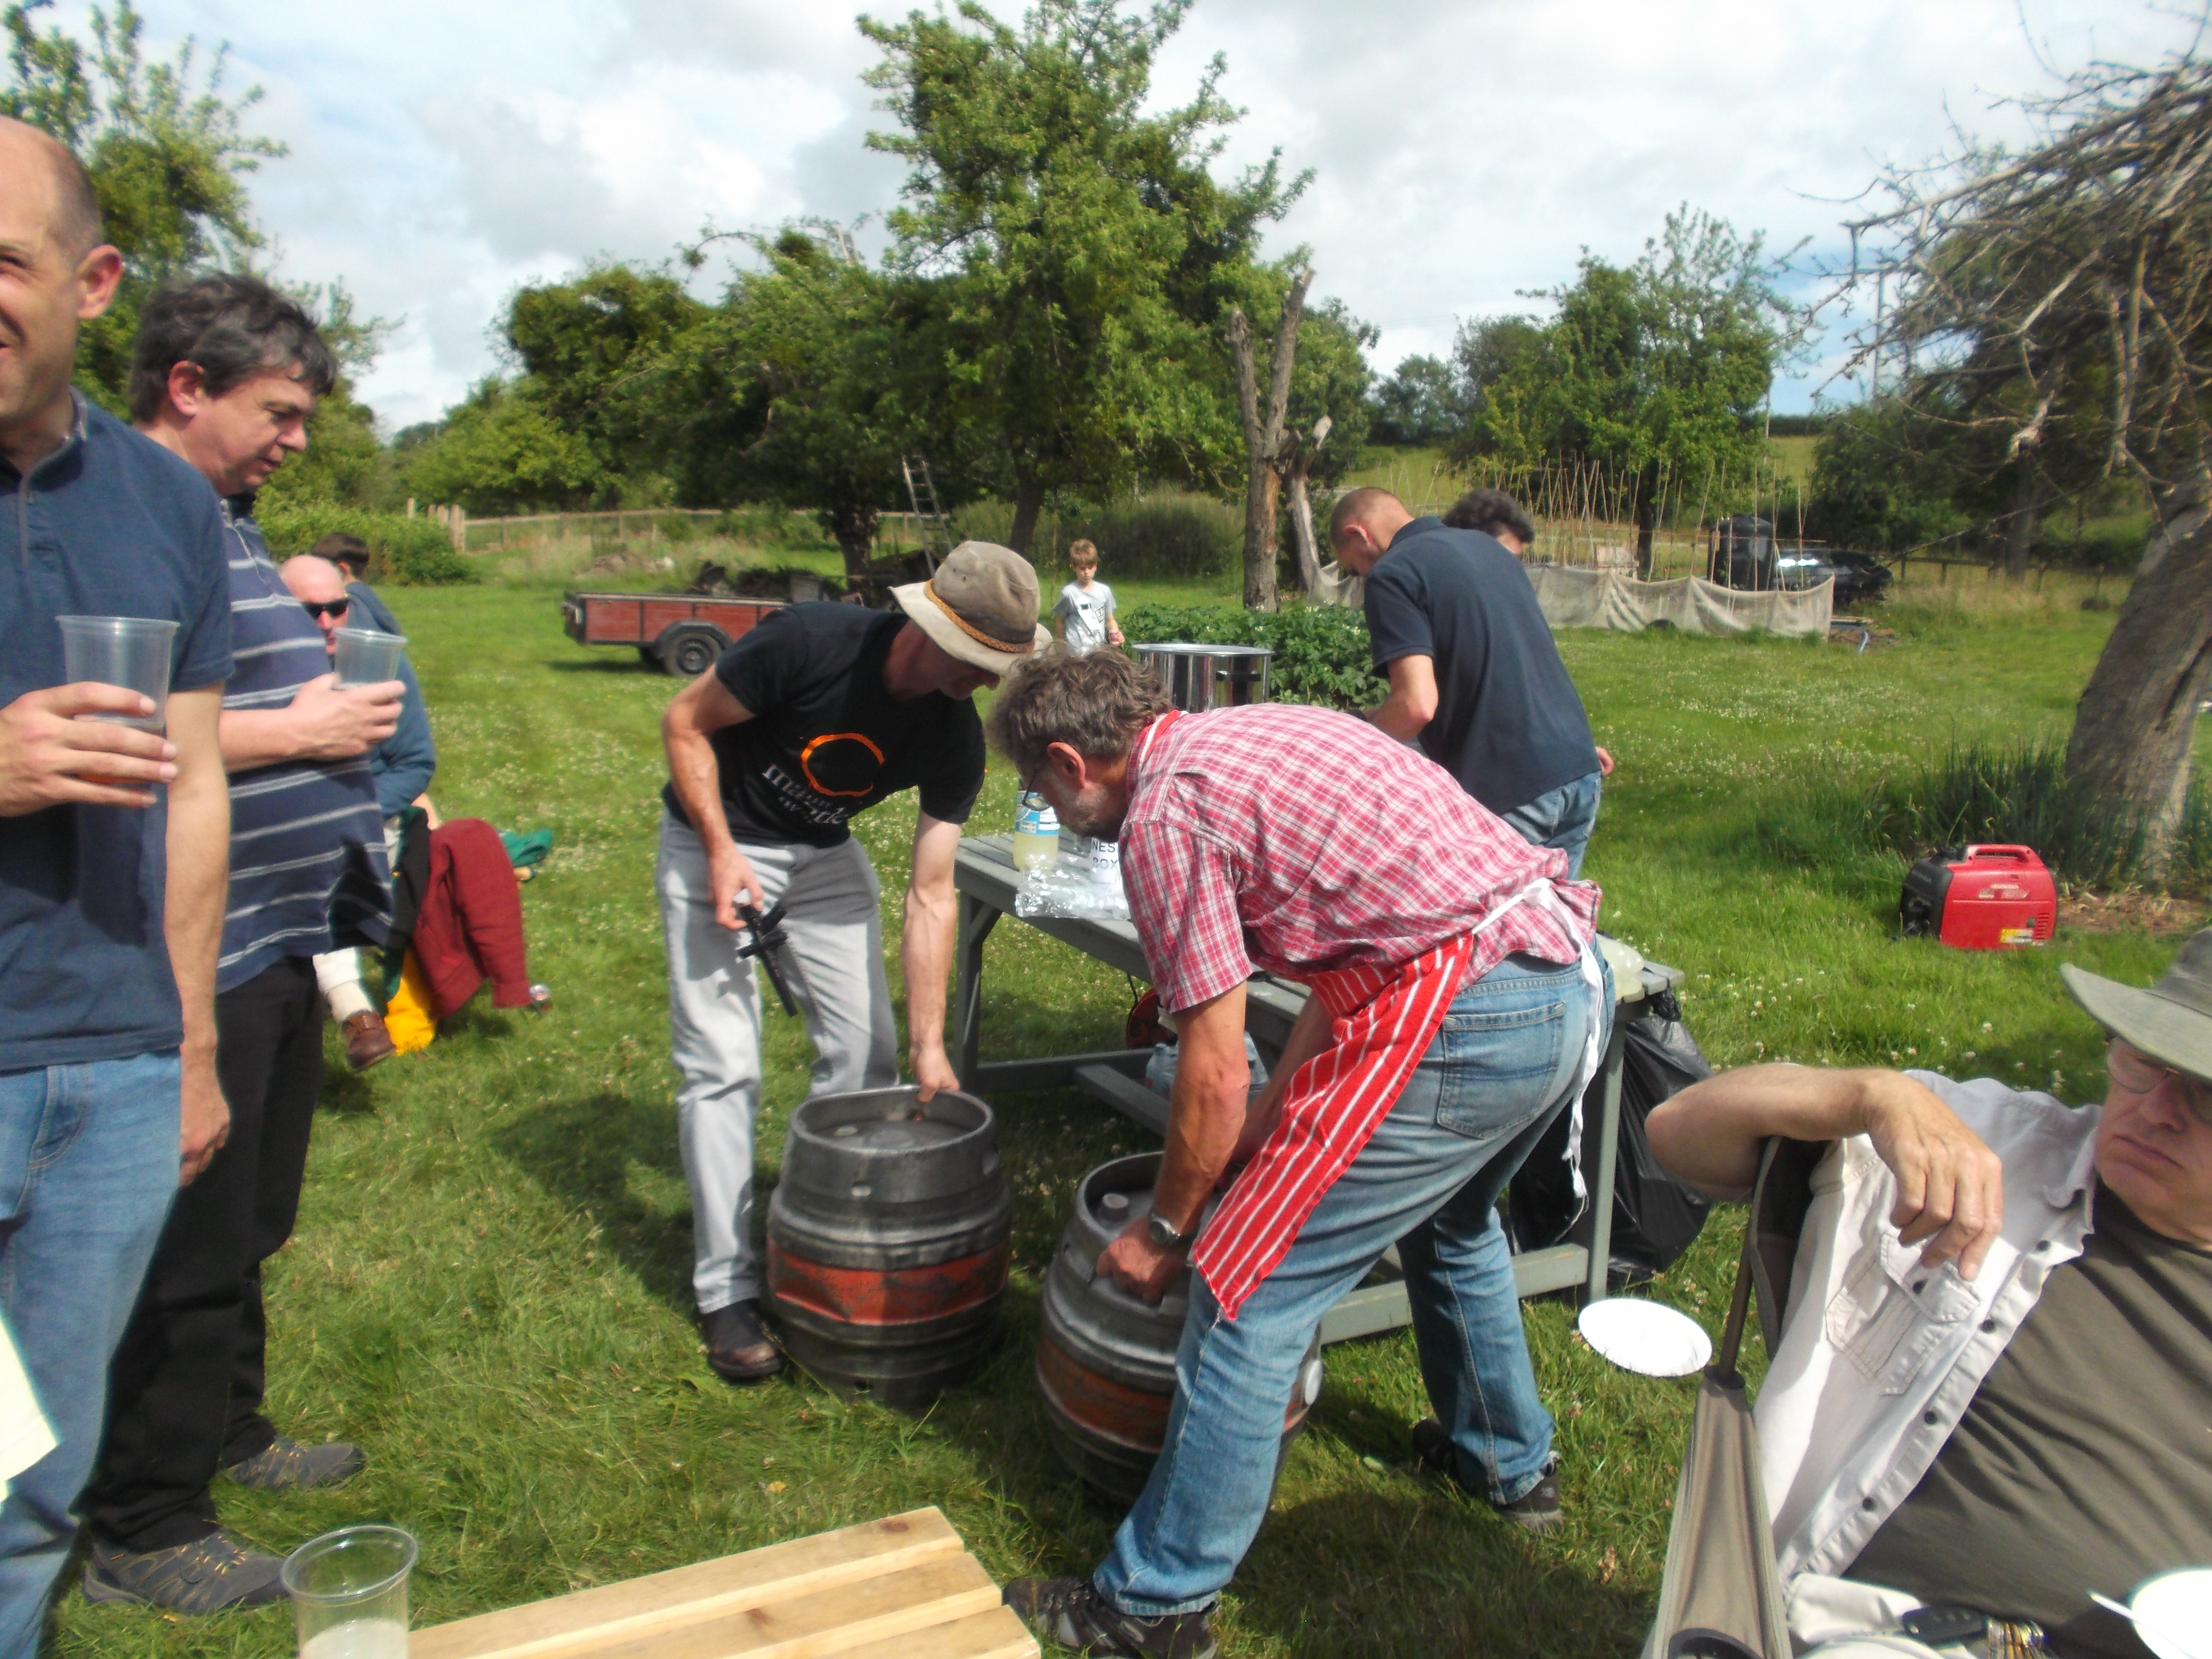 Changing of the barrels!